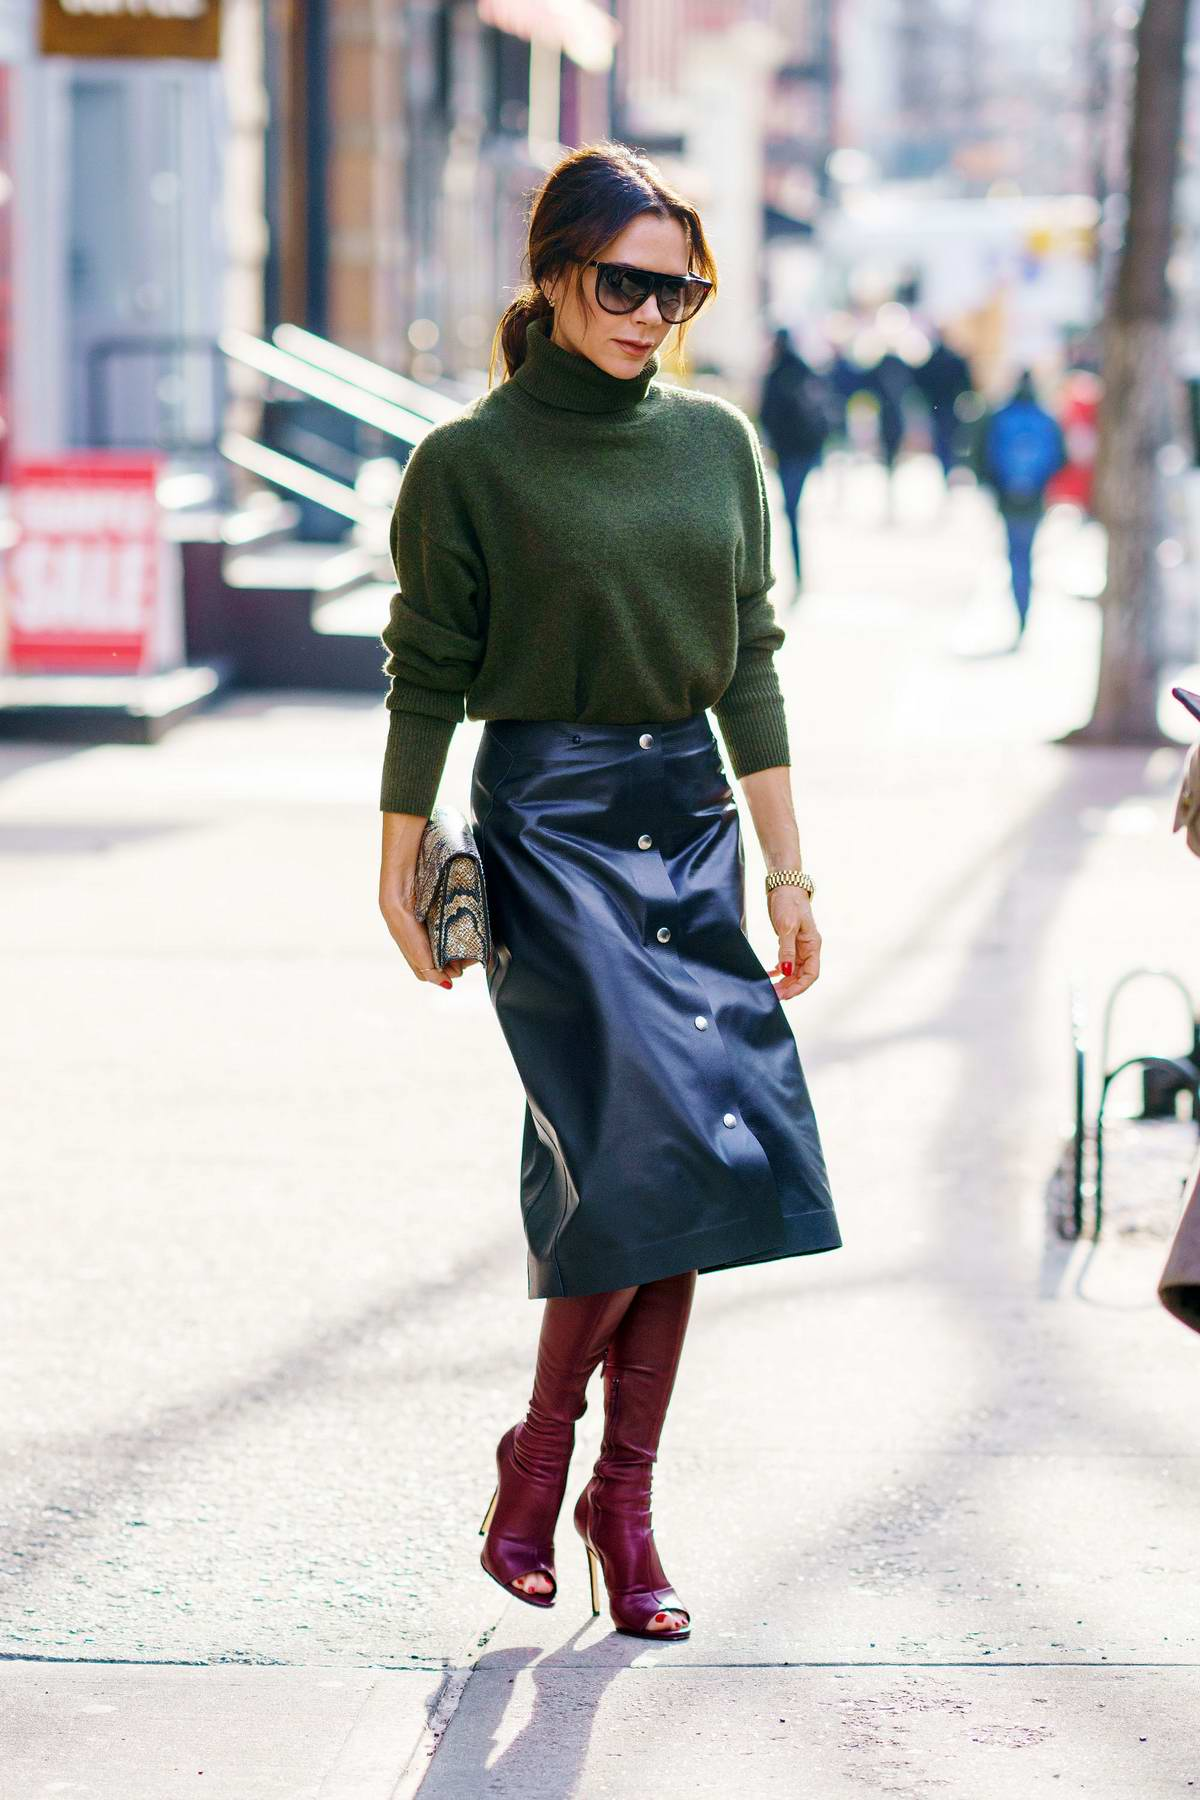 Victoria Beckham steps out wearing a green turtleneck, black leather skirt and maroon boots during a shopping trip in New York City